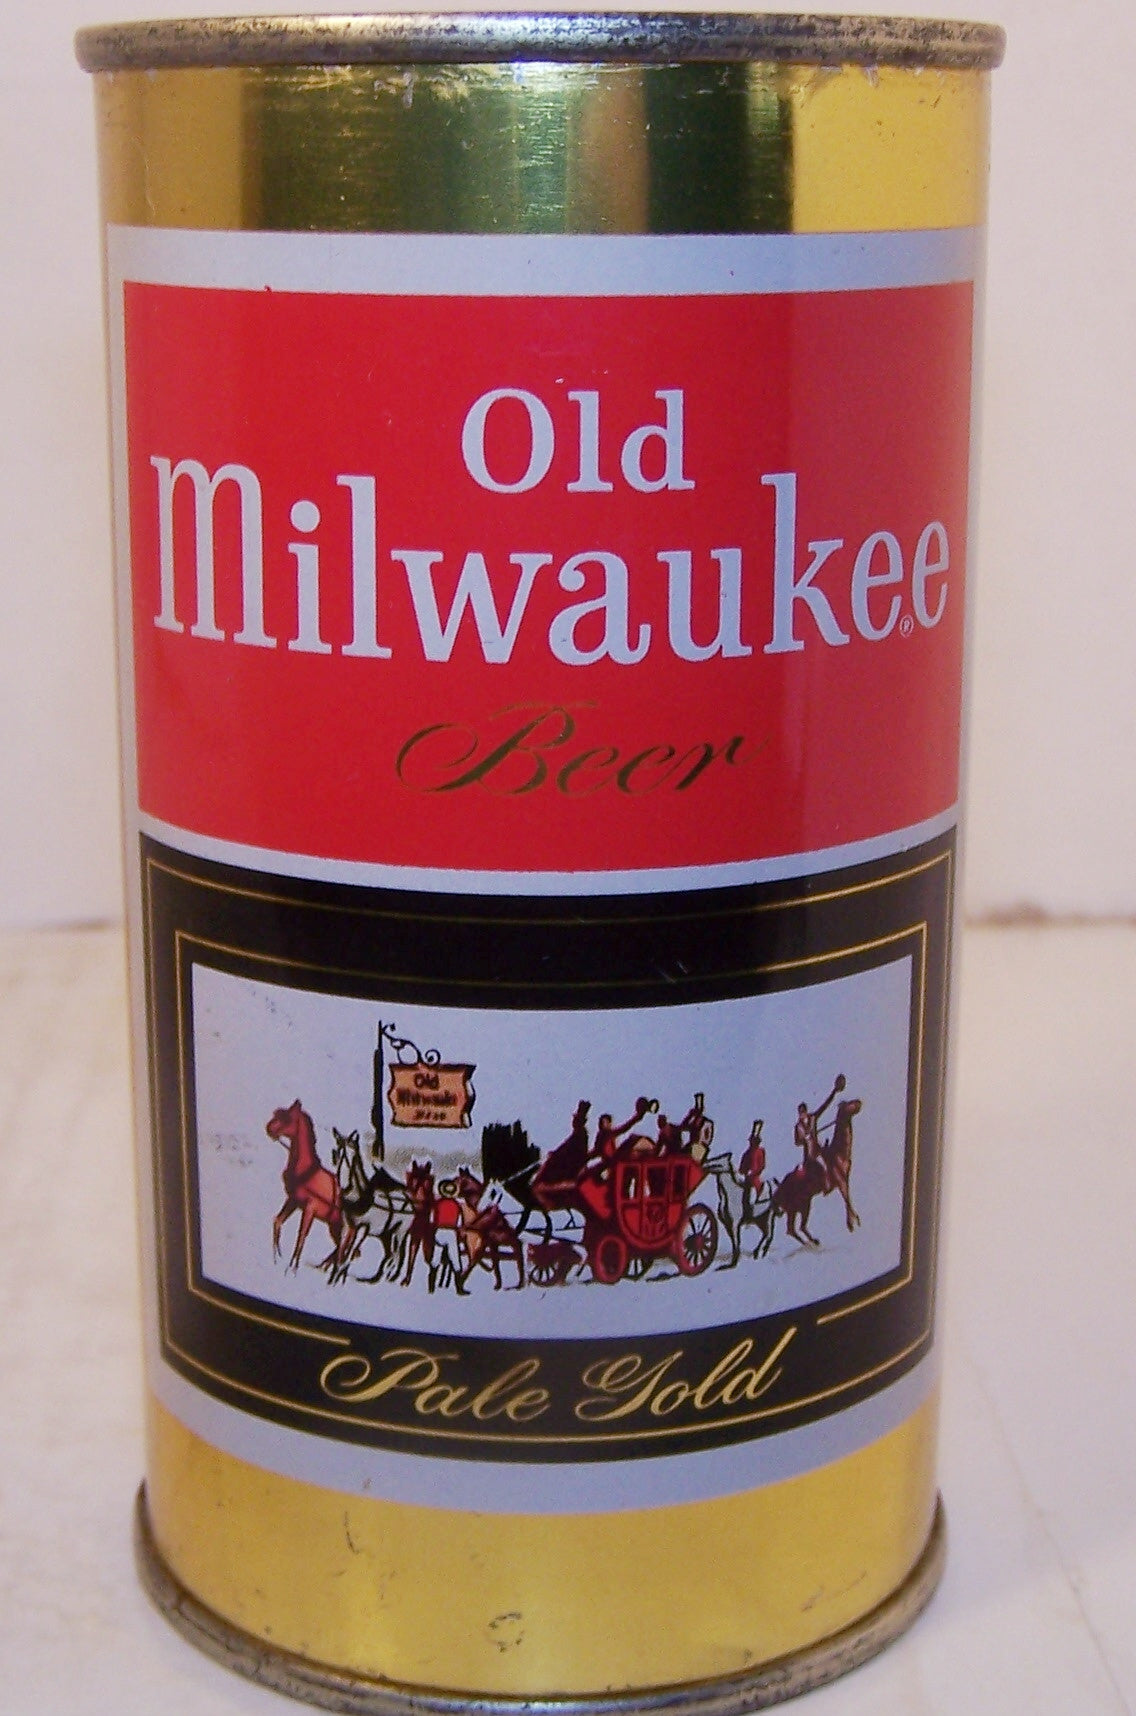 Old Milwaukee Pale Gold Beer, USBC 107-26, Grade A1+ Sold 12/11/14